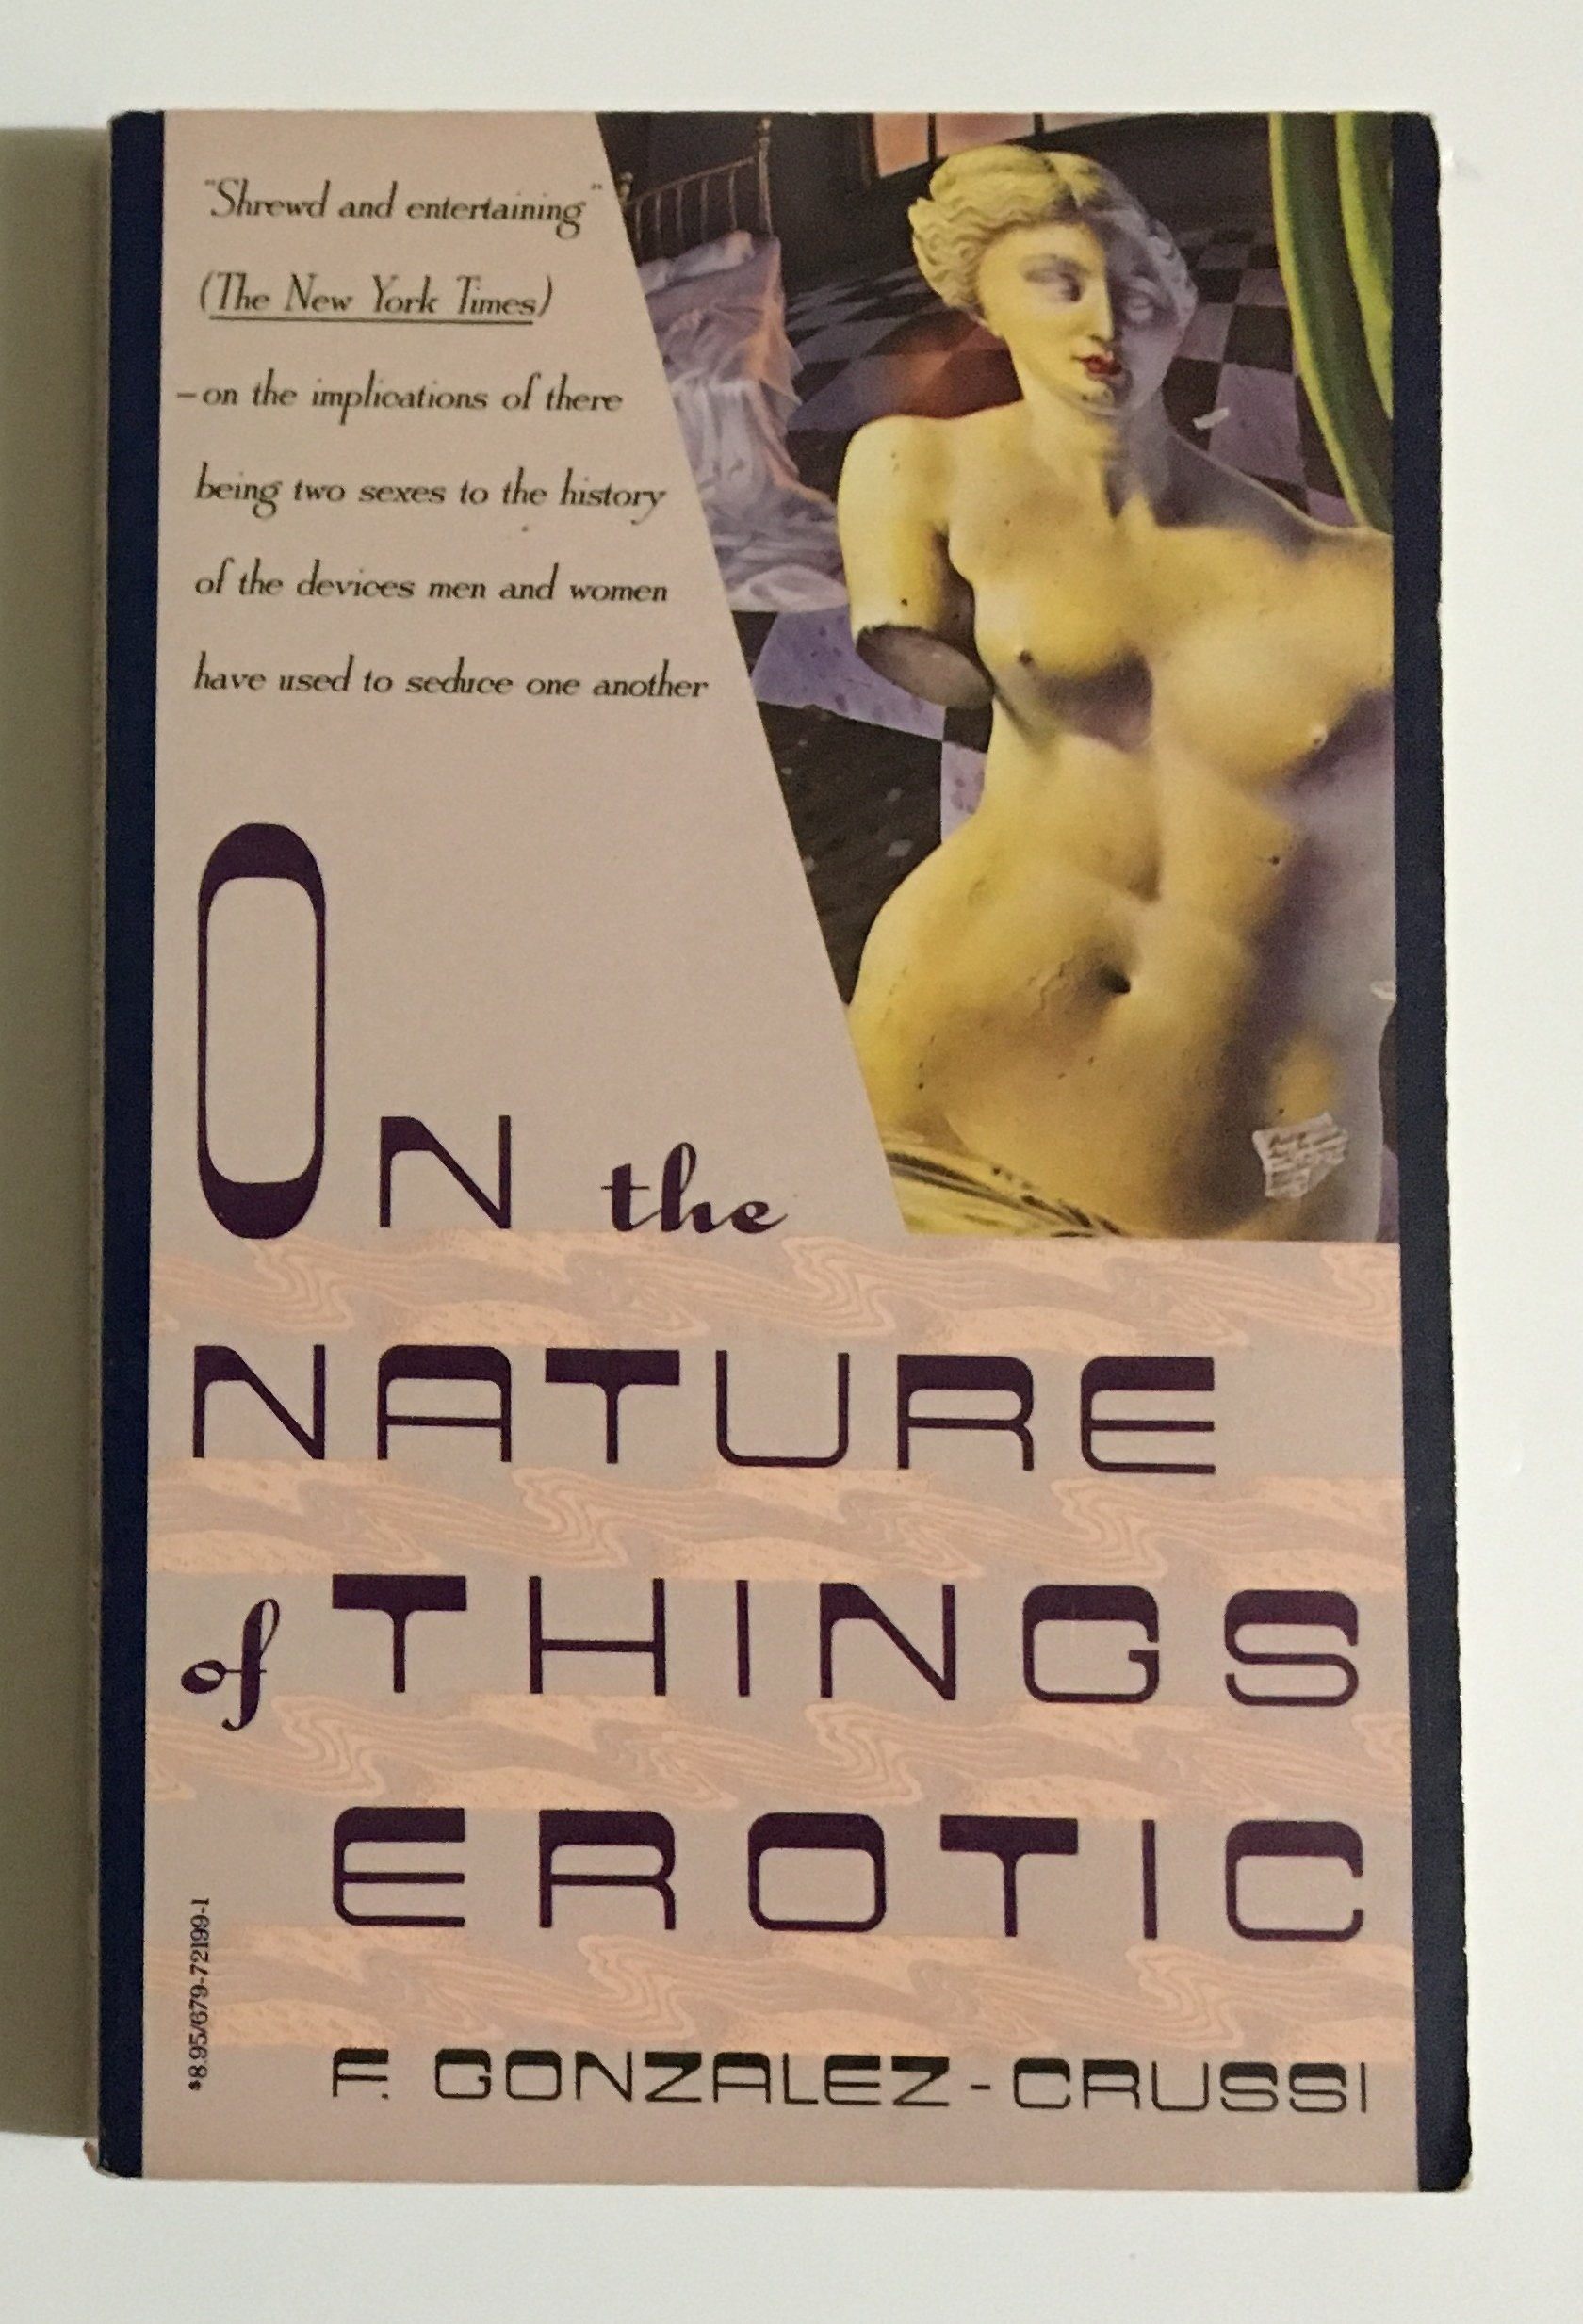 Image for On the Nature of Things Erotic